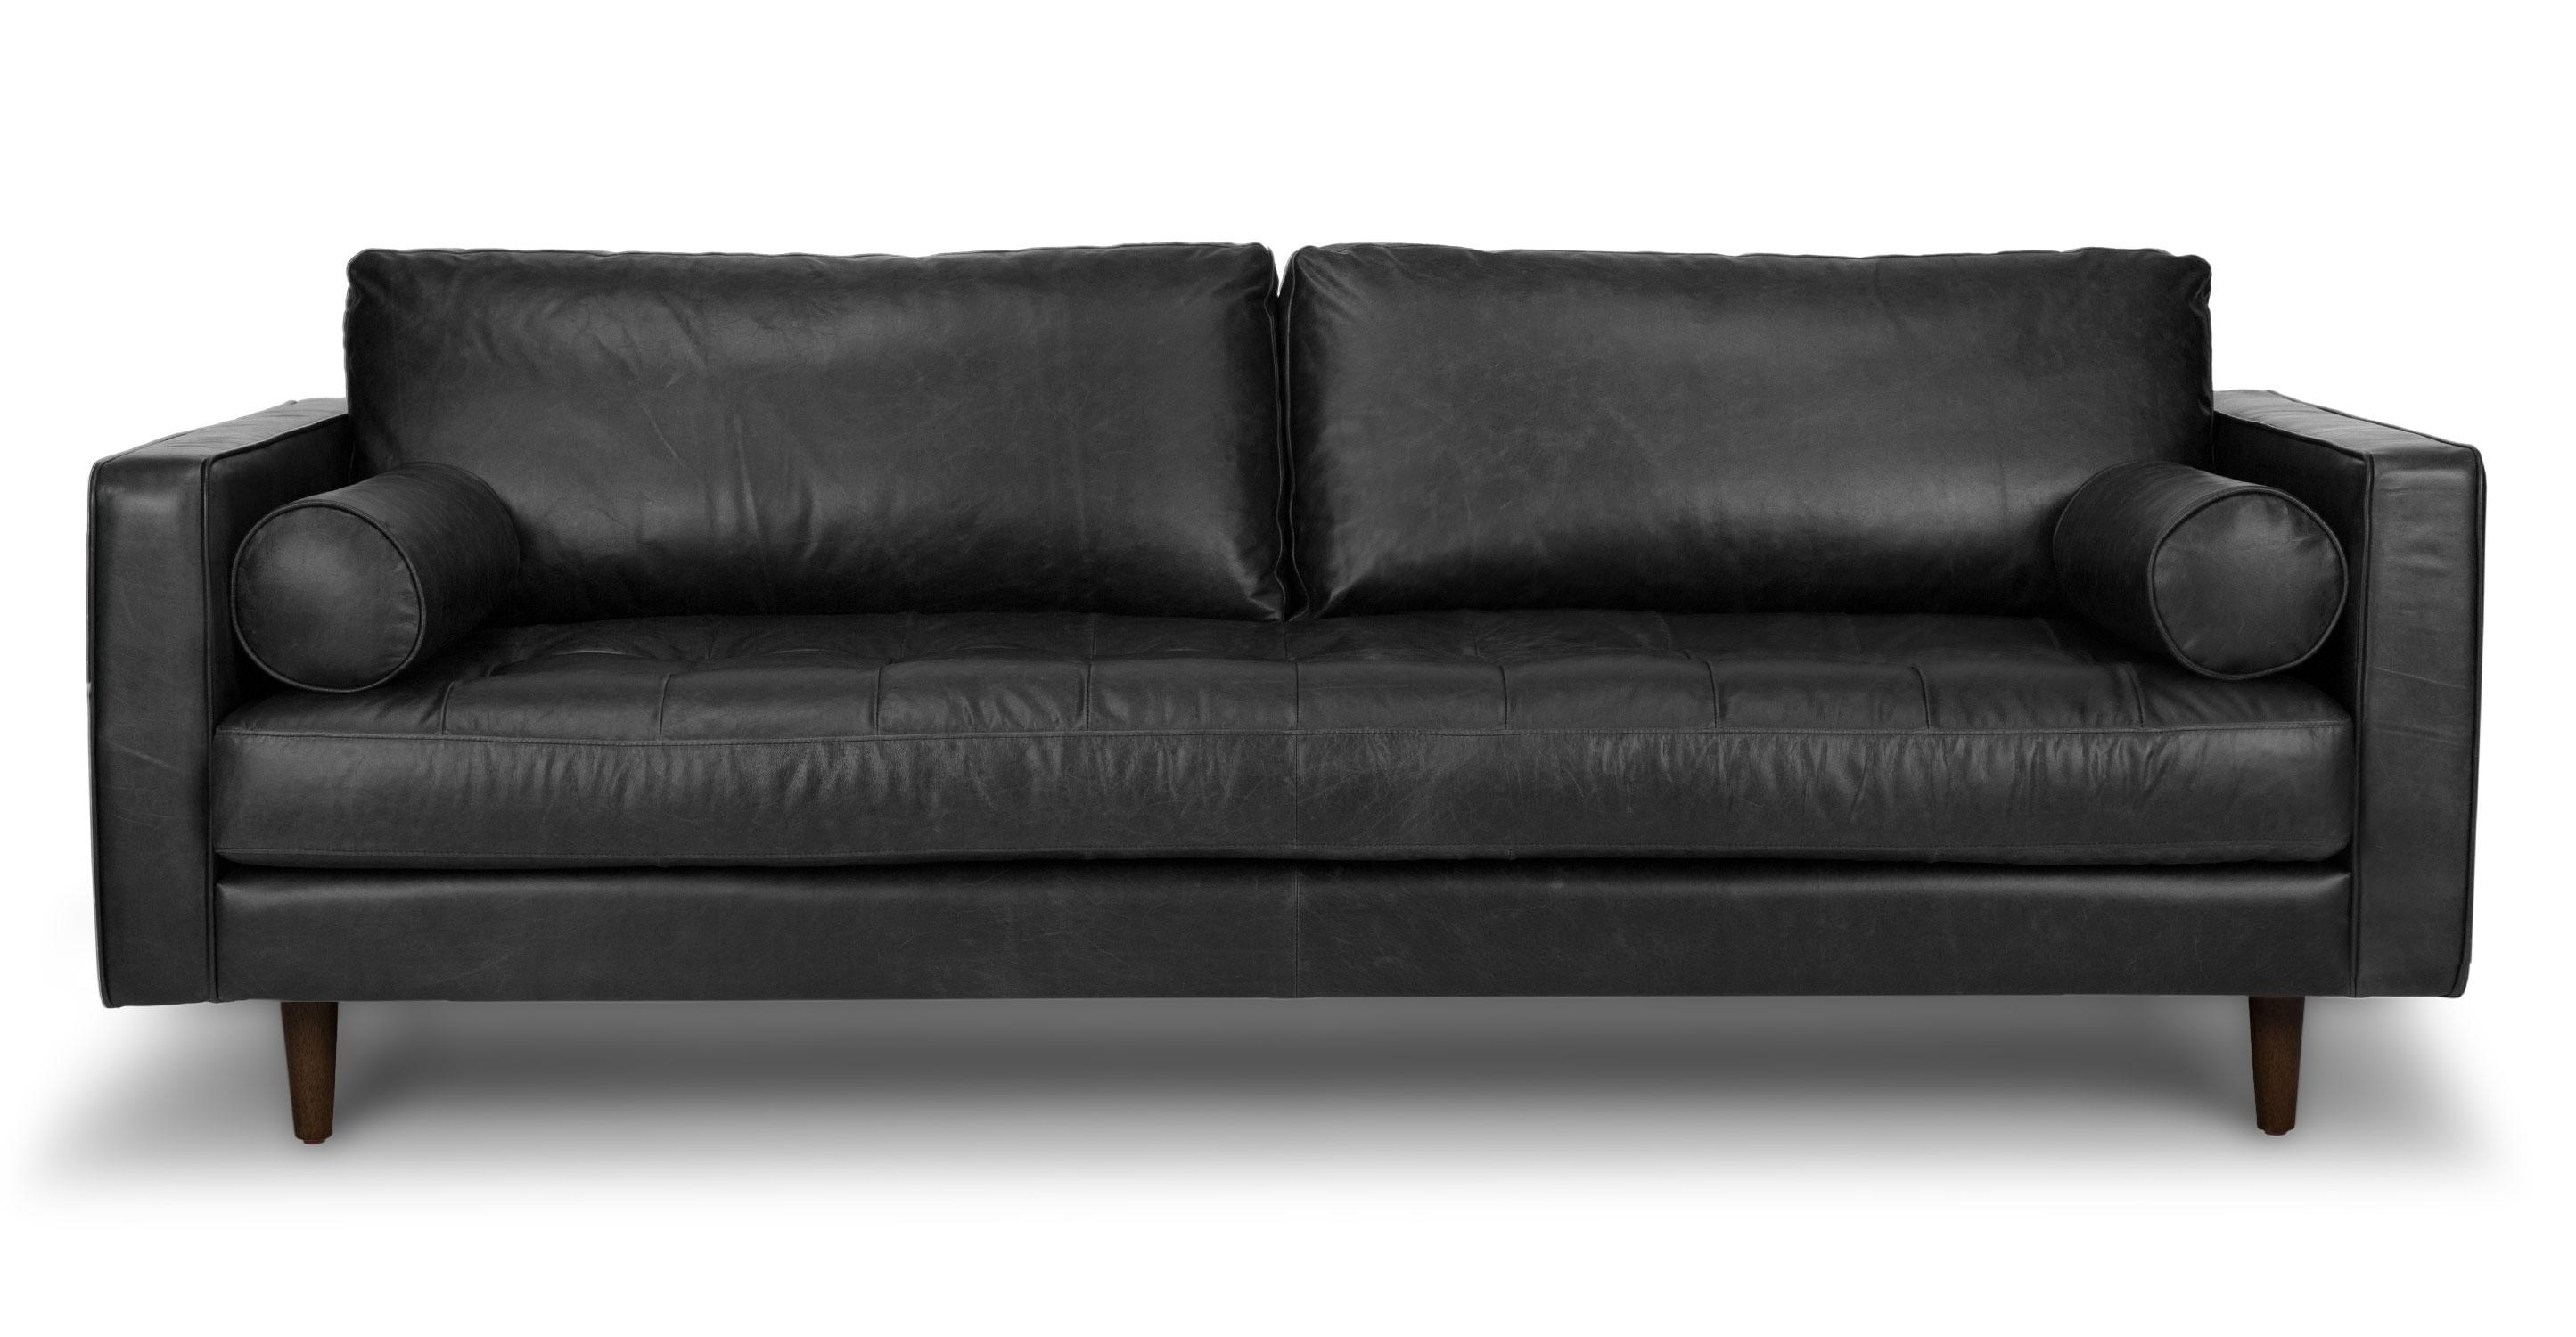 Furniture Black Modern Couches Leather Couch And White | Newmediahub Intended For Black Modern Couches (Image 9 of 20)